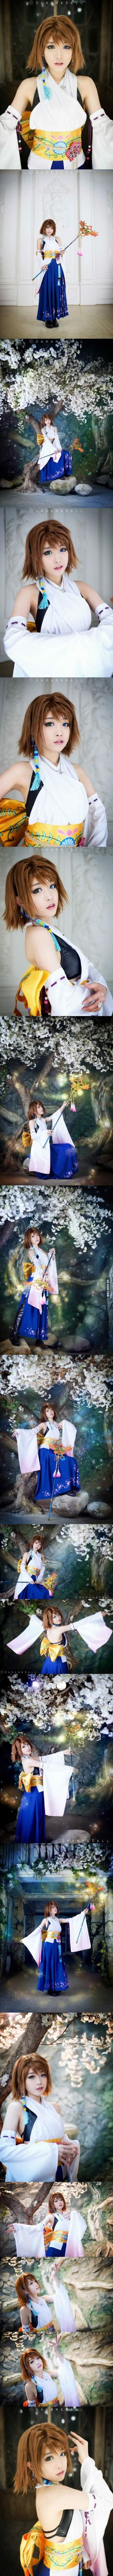 Final Fantasy X - Yuna Cosplay - Tomia